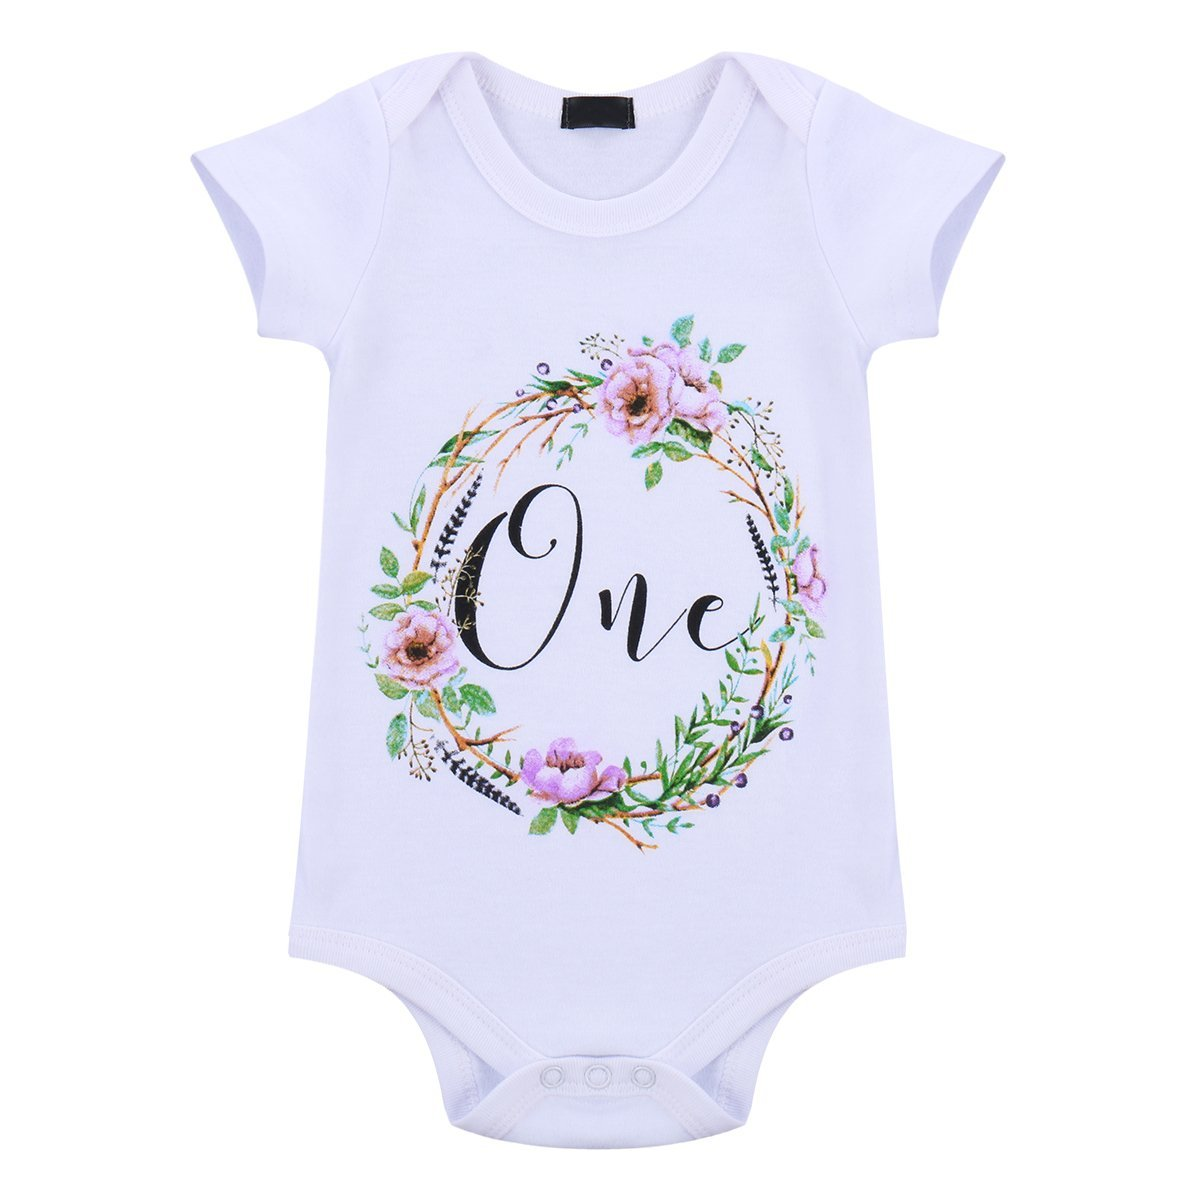 Baby Girls Flower One Year 1st Birthday Outfit Sequin Bowknot Princess Party Birthday Dress Newborn Infant Toddler Kids Floral Romper Tutu Skirt Headband 3PCS Cake Smash Outfits Photo Shoot Costume